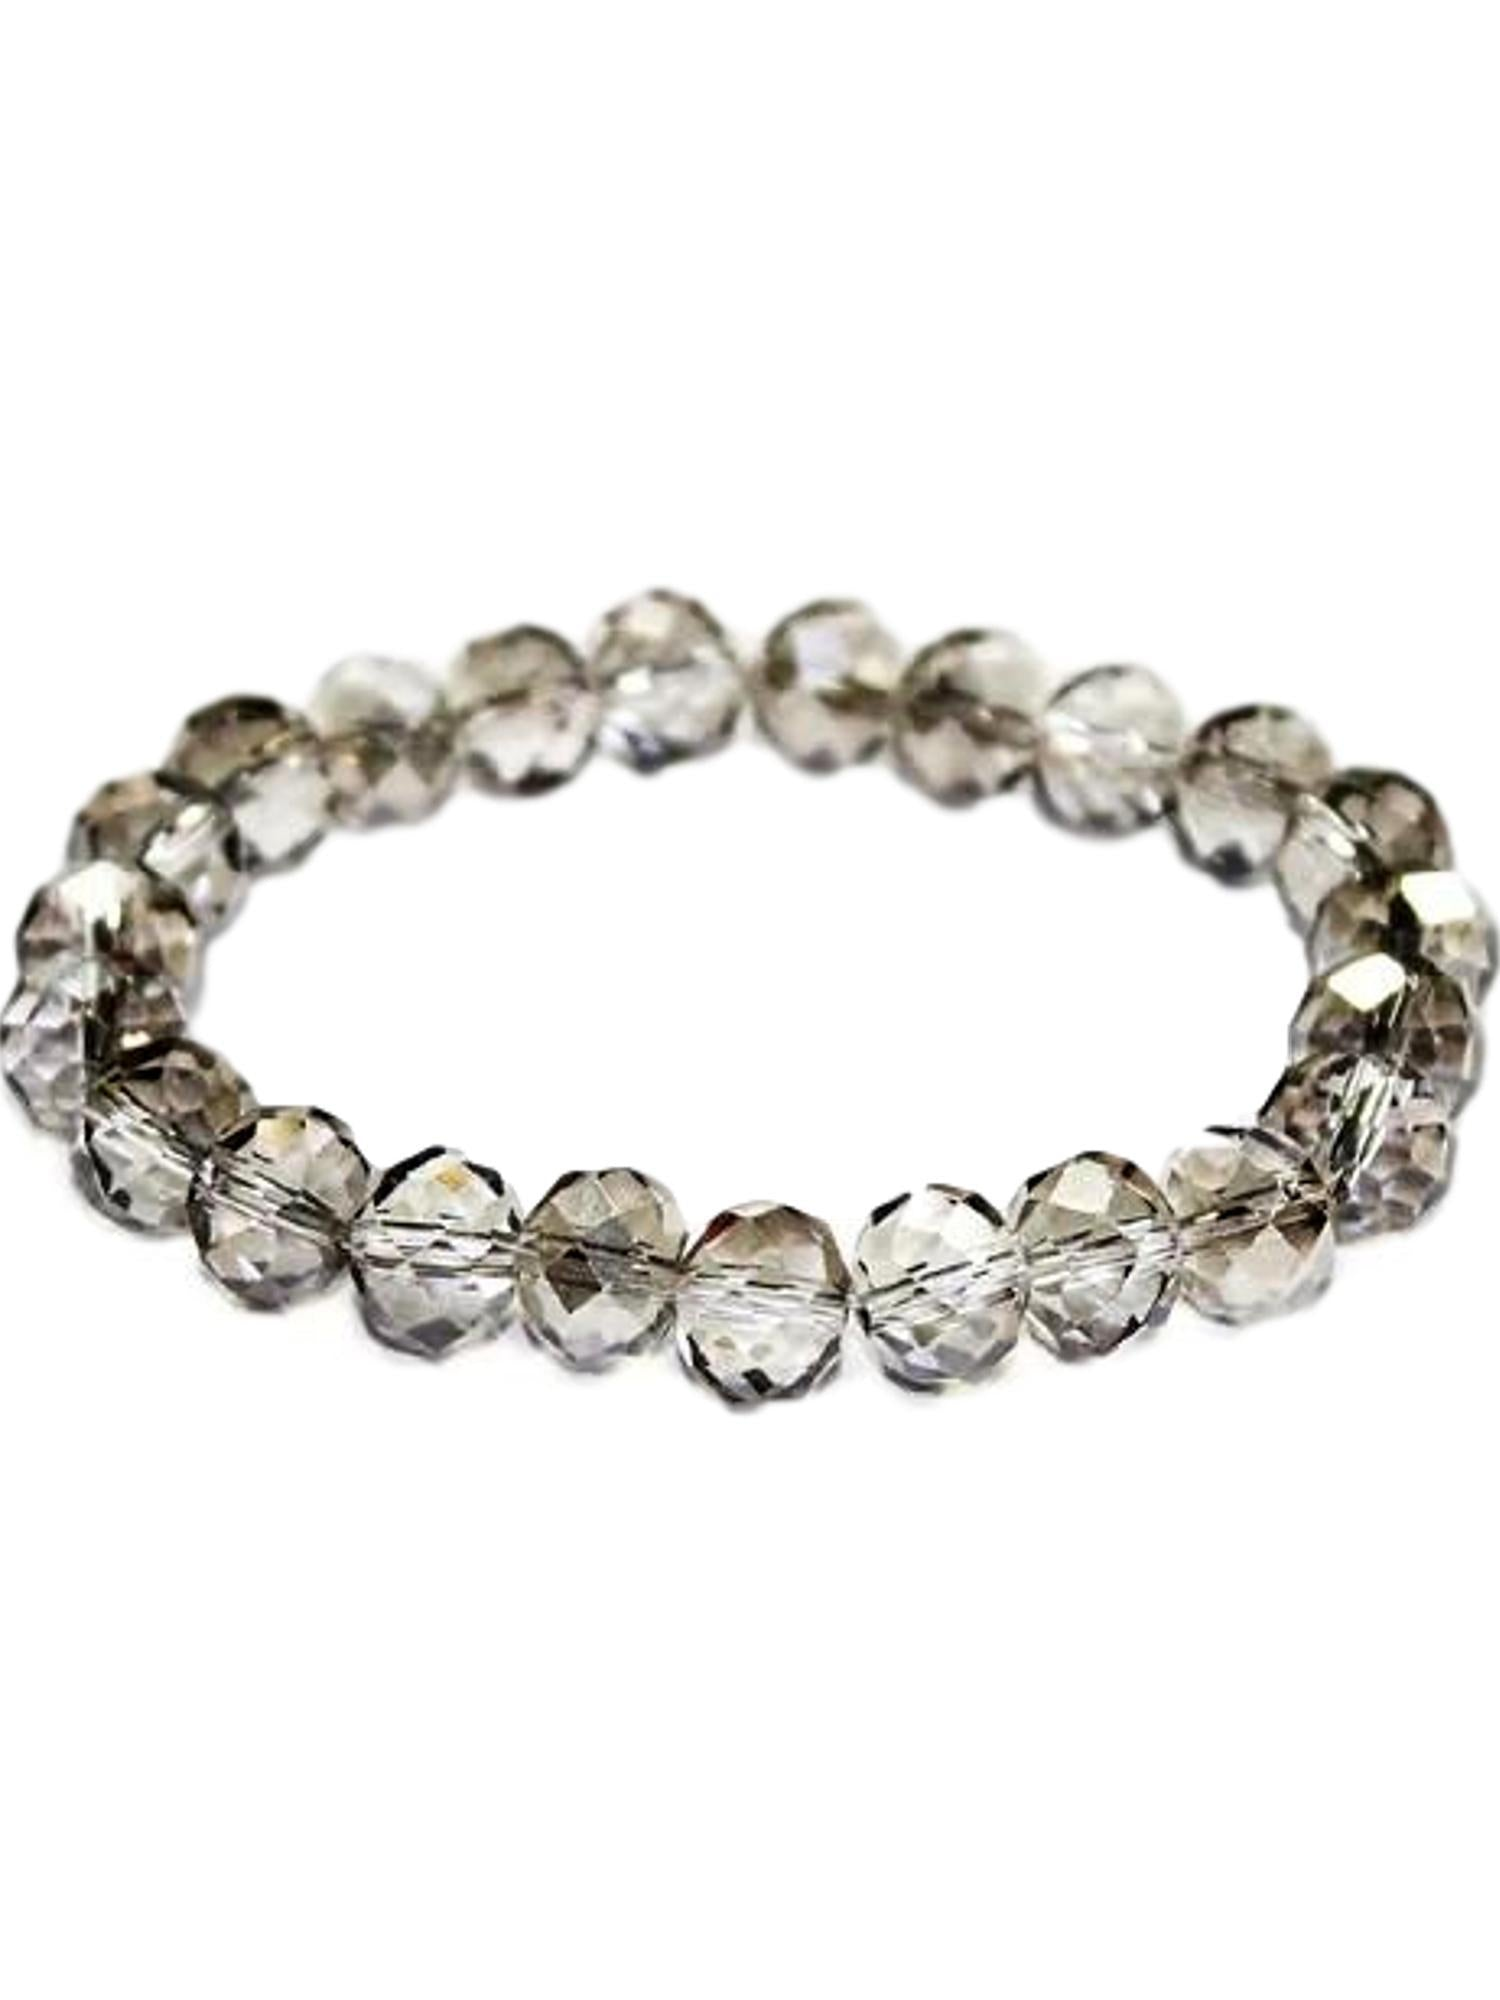 lyst s yurman diamond jewelry david bracelet black silverblack women diamonds in petite with pav pave